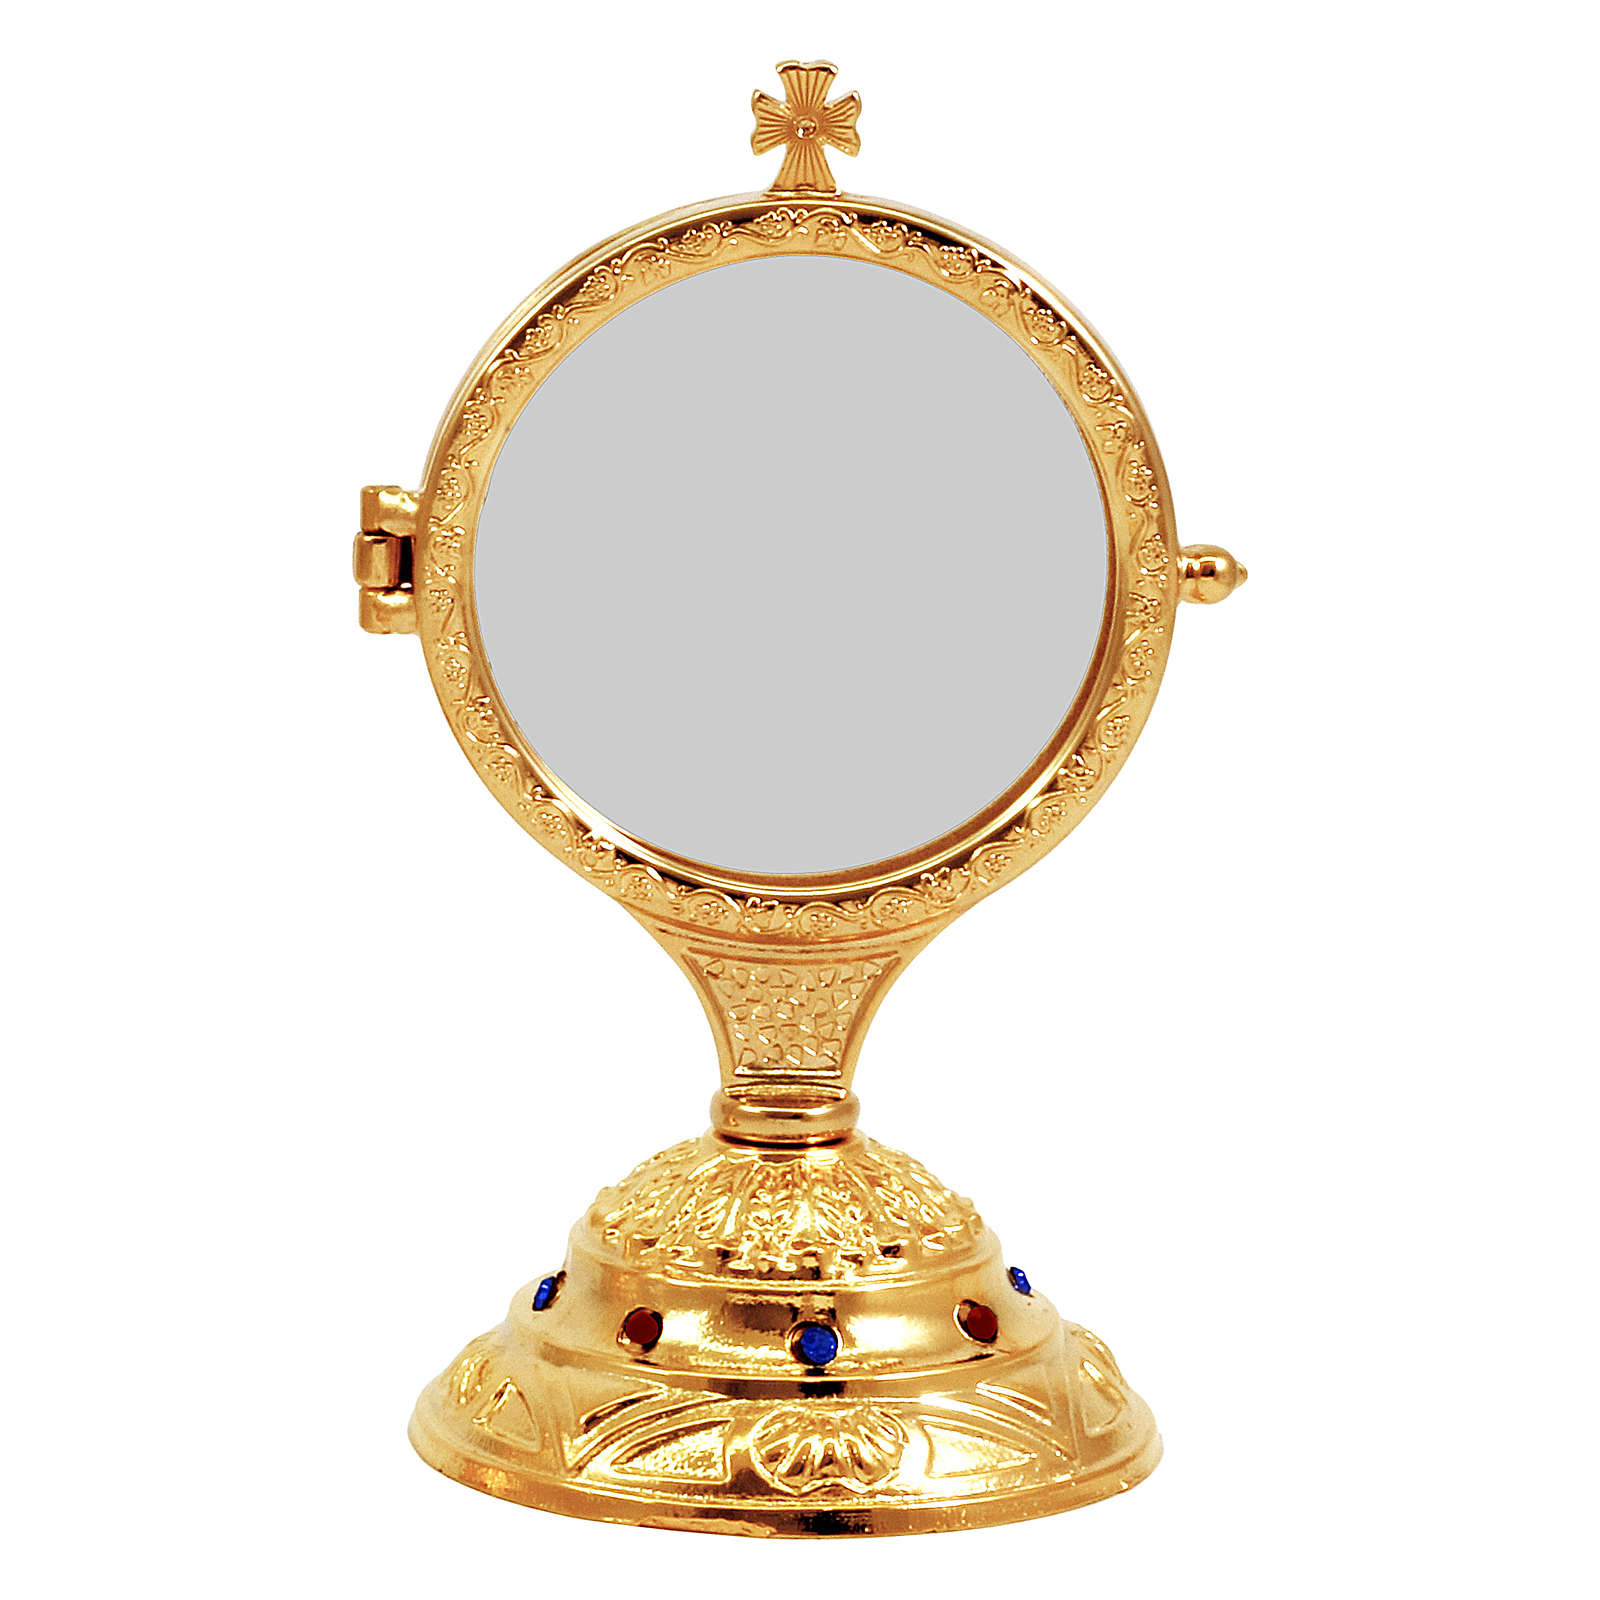 Golden monstrance with decorative stones on the base, h. 15 cm 4